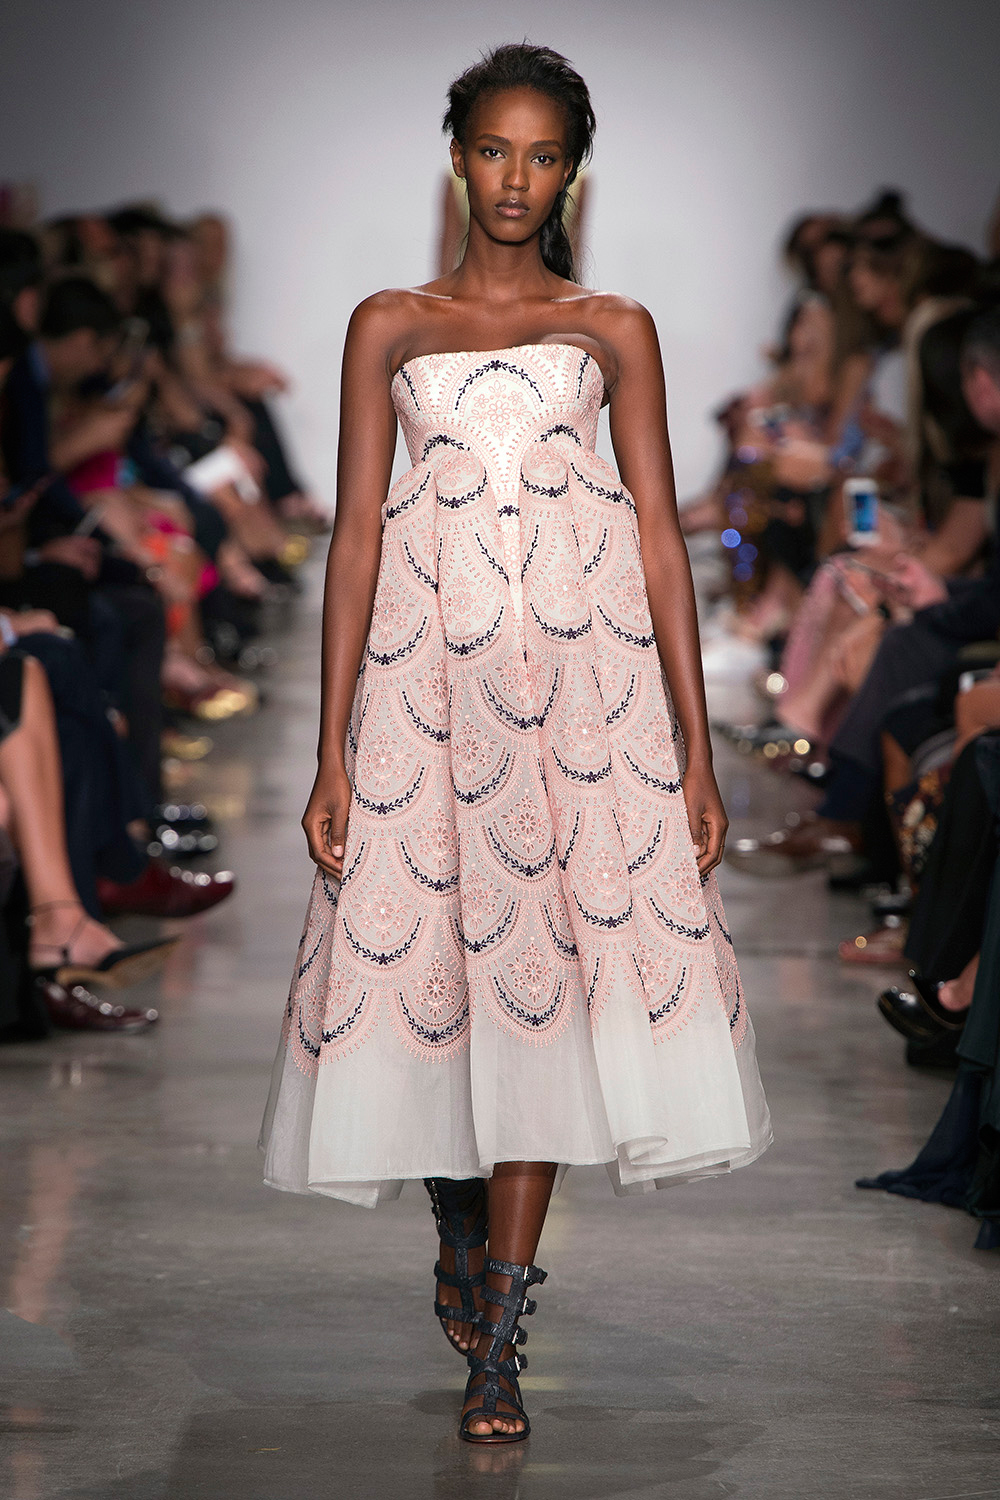 Look 37: Blush Strapless Dress